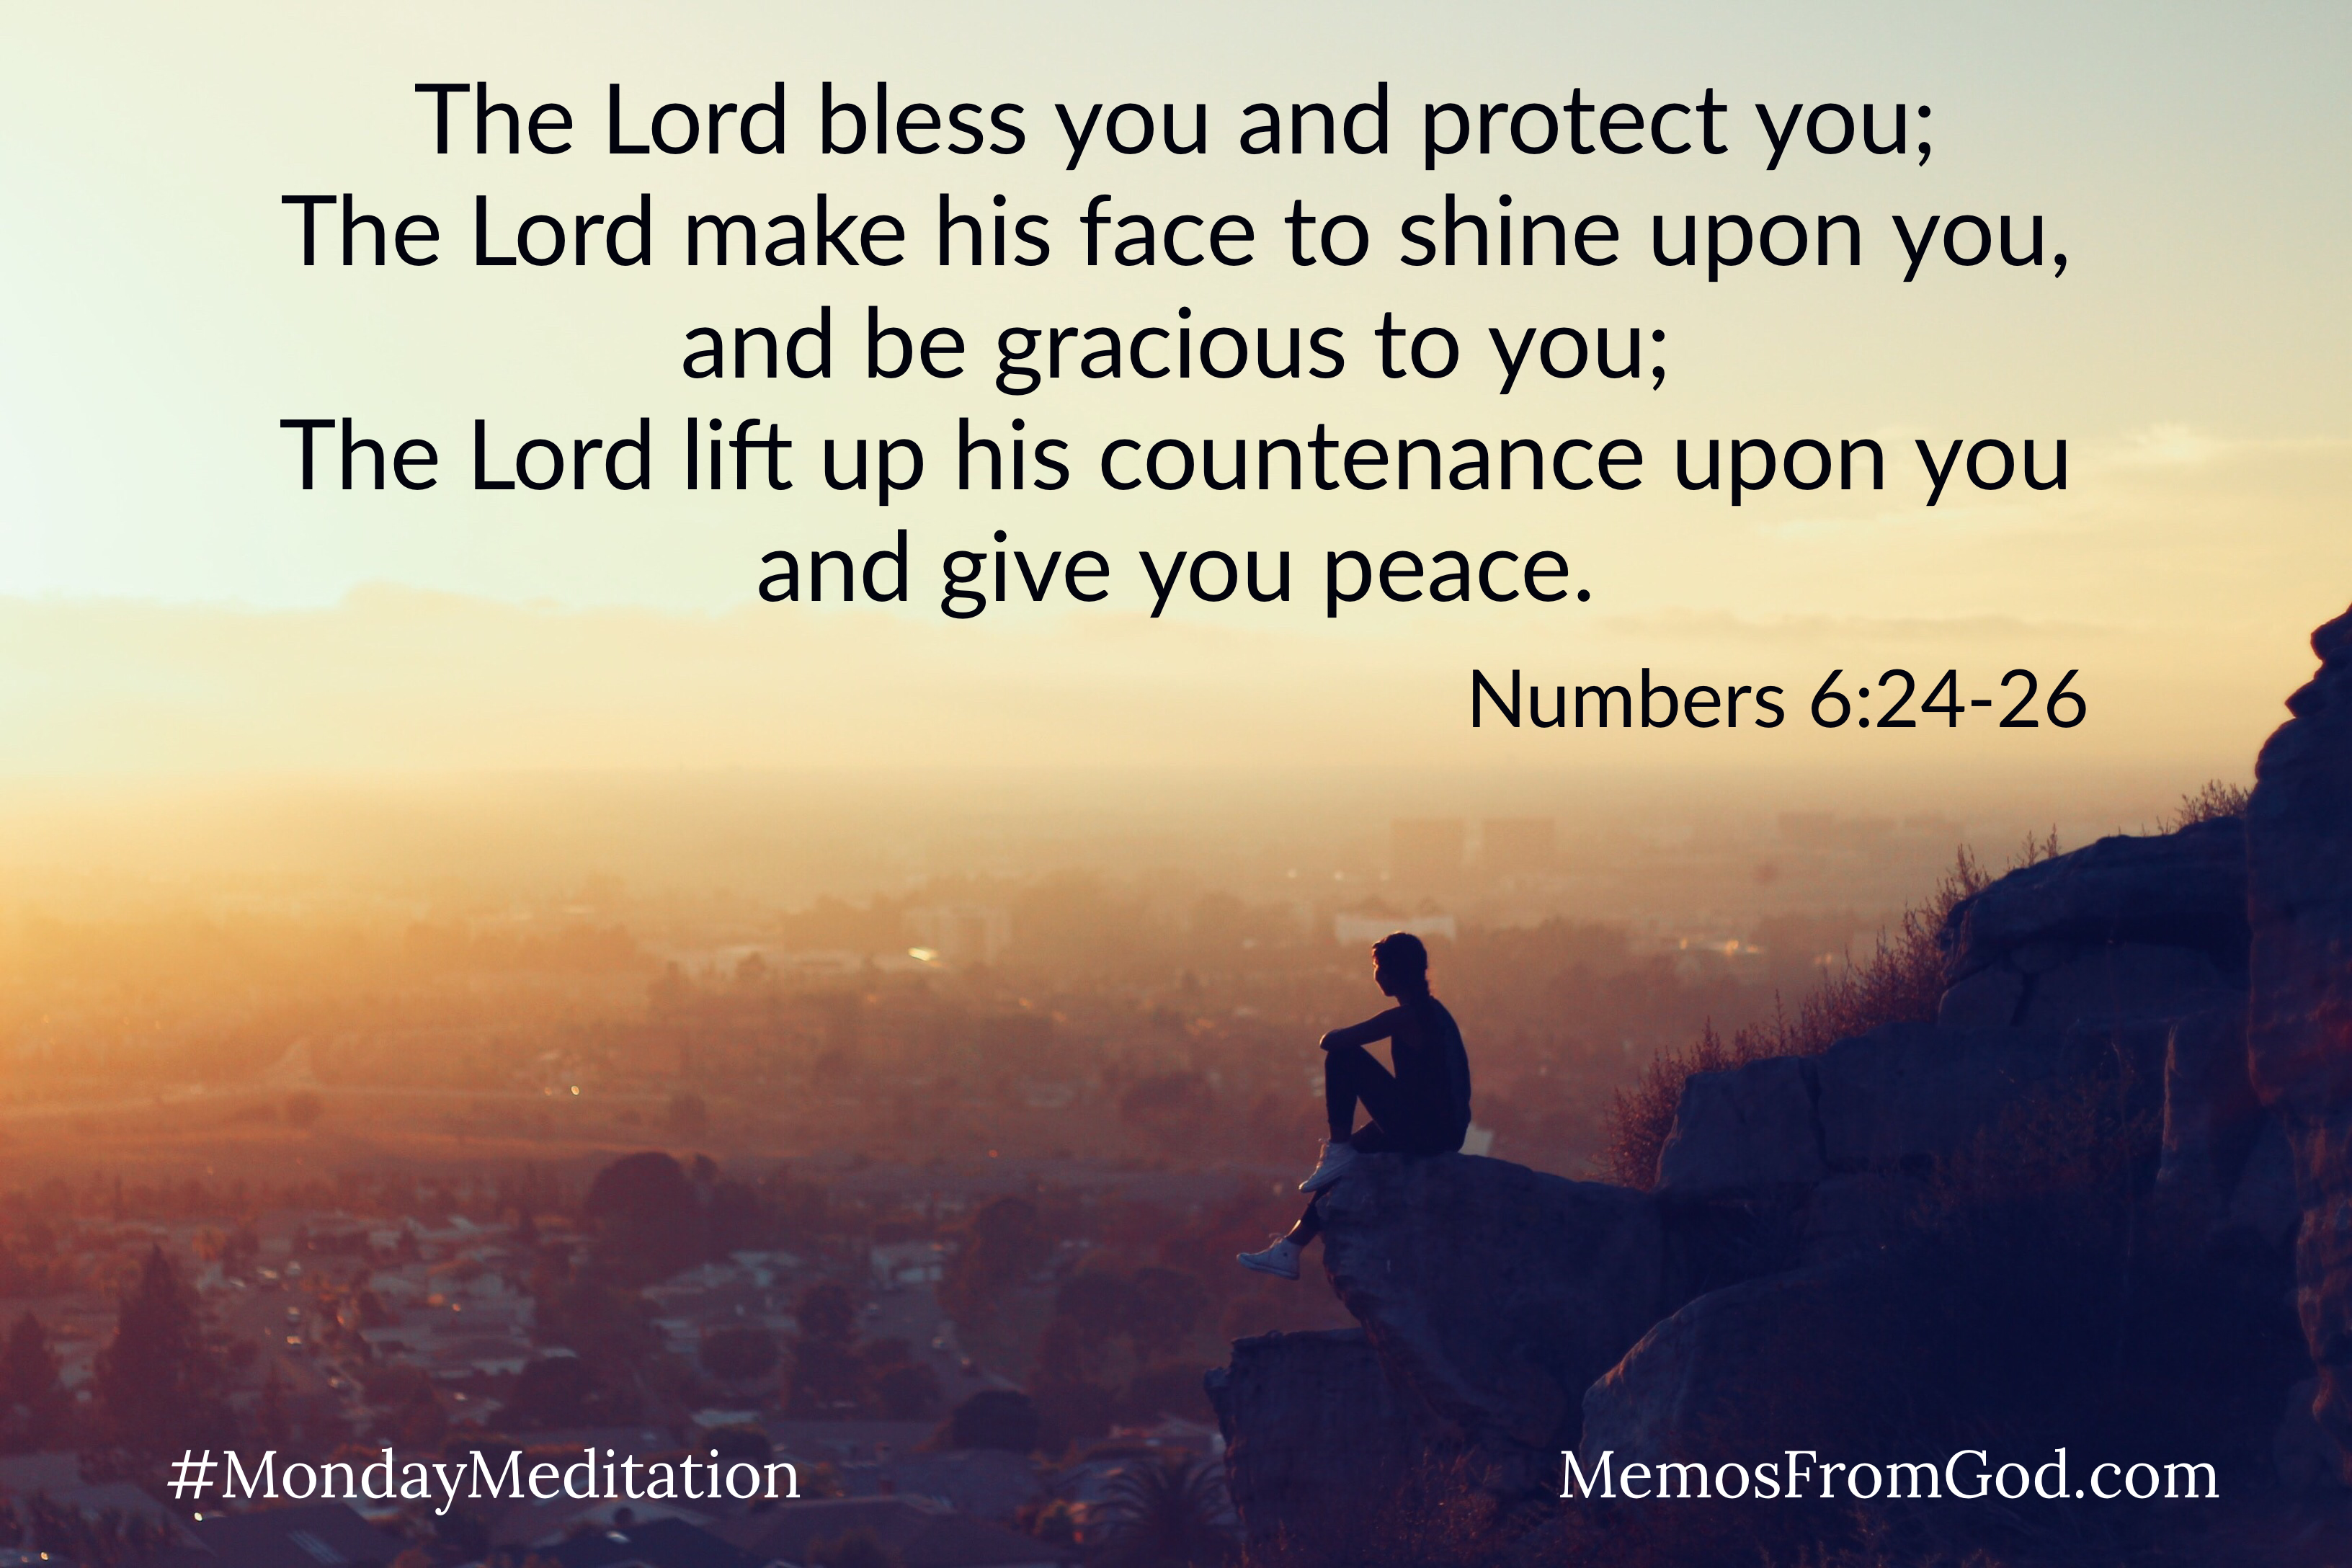 A man sitting on a rocky outcrop on the side of a mountain under a hazy sky, looking down on the city below. Caption: The Lord bless you and protect you; The Lord make his face to shine upon you, and be gracious to you; The Lord lift up his countenance upon you and give you peace. Numbers 6:24-26